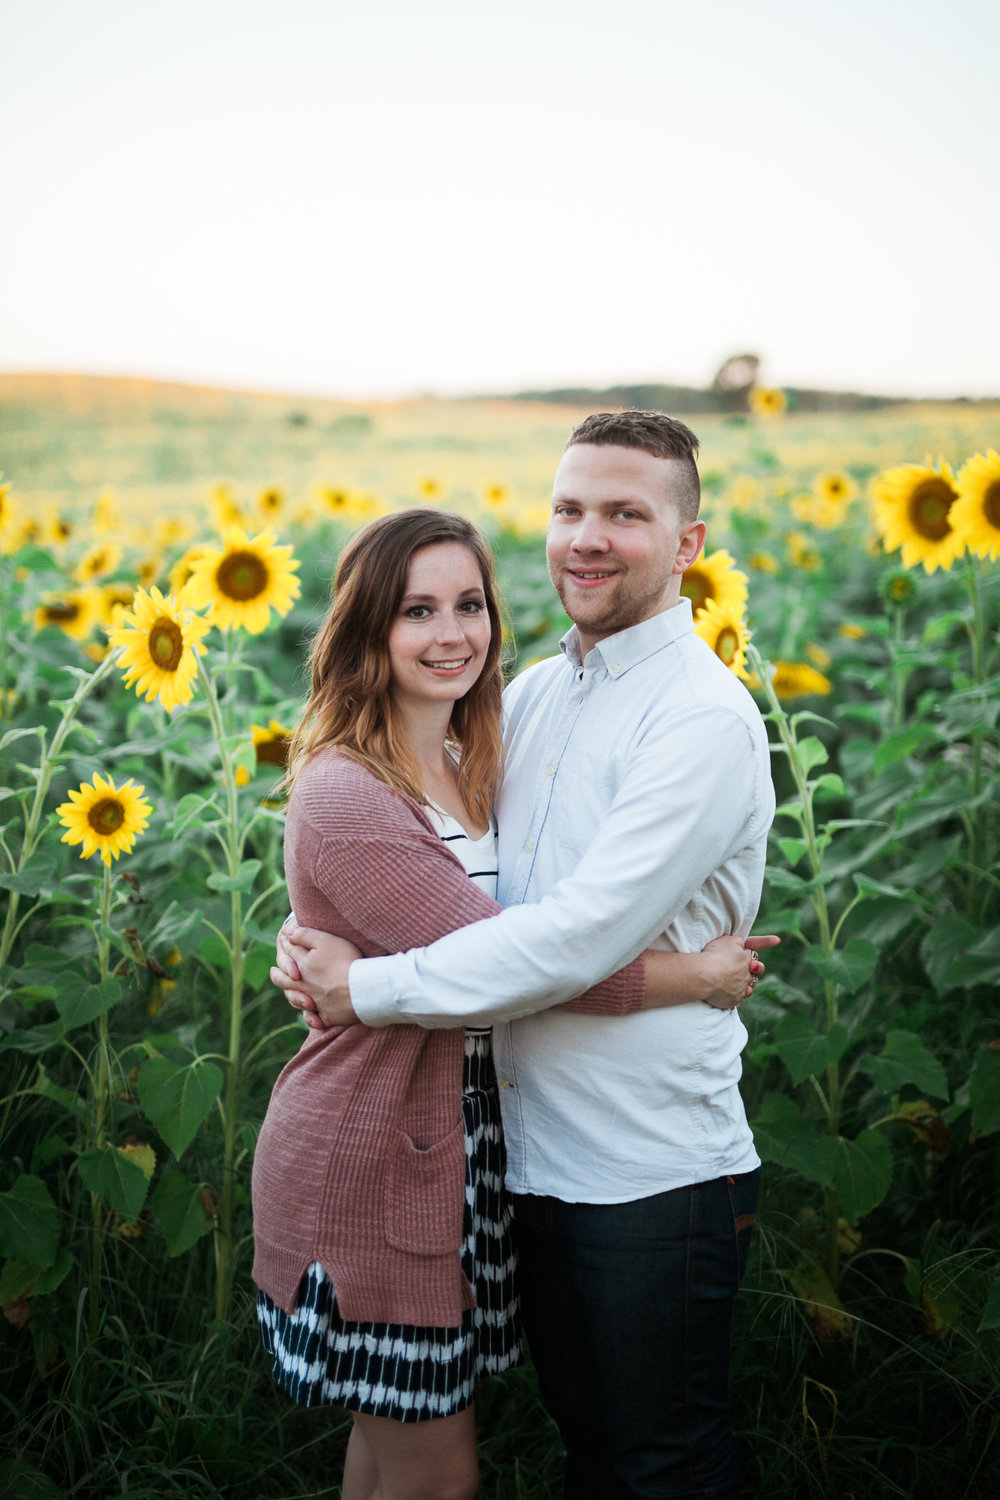 Pope-Farms-Sunflower-Engagement-Session-Madison-Wisconsin_024.jpg